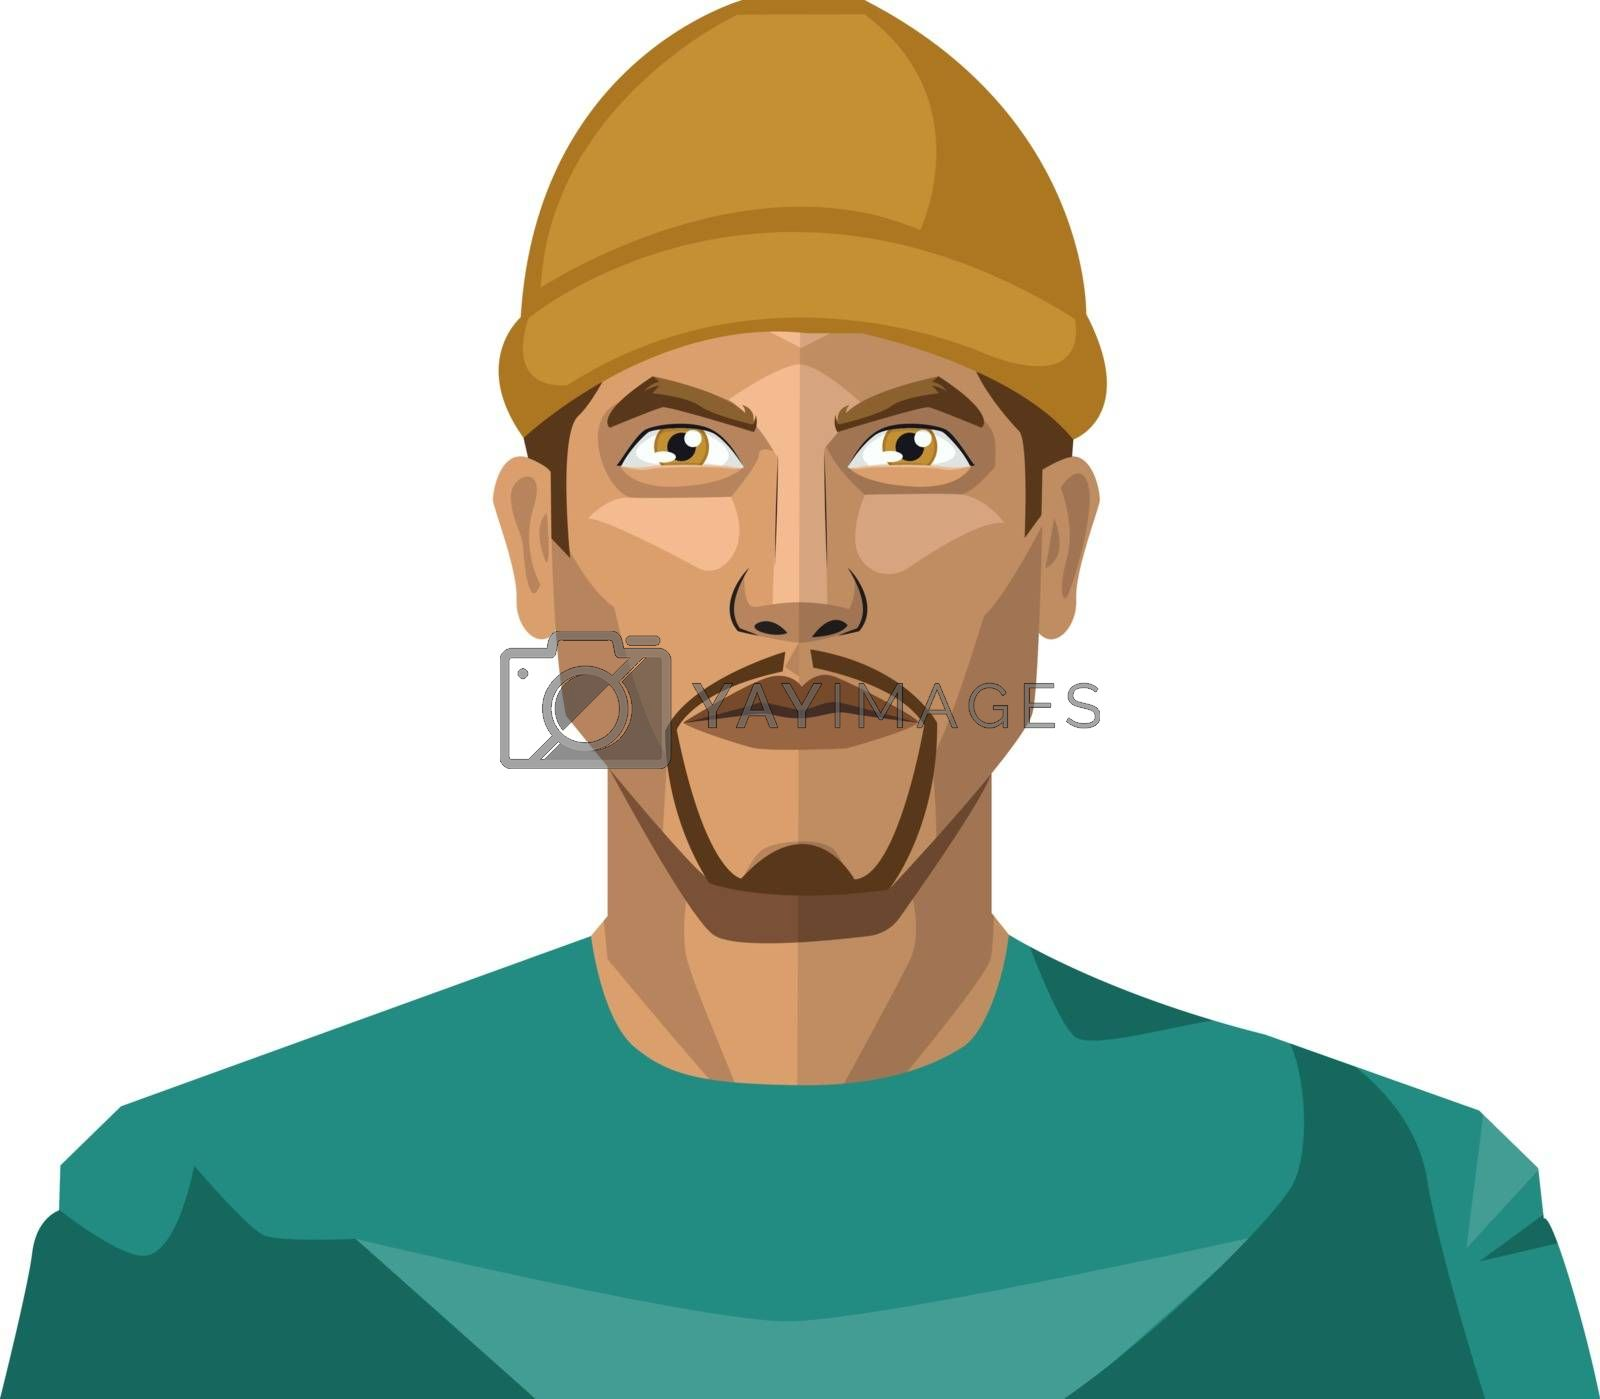 Royalty free image of Guy with a goatee beard wearing a brown hat illustration vector  by Morphart